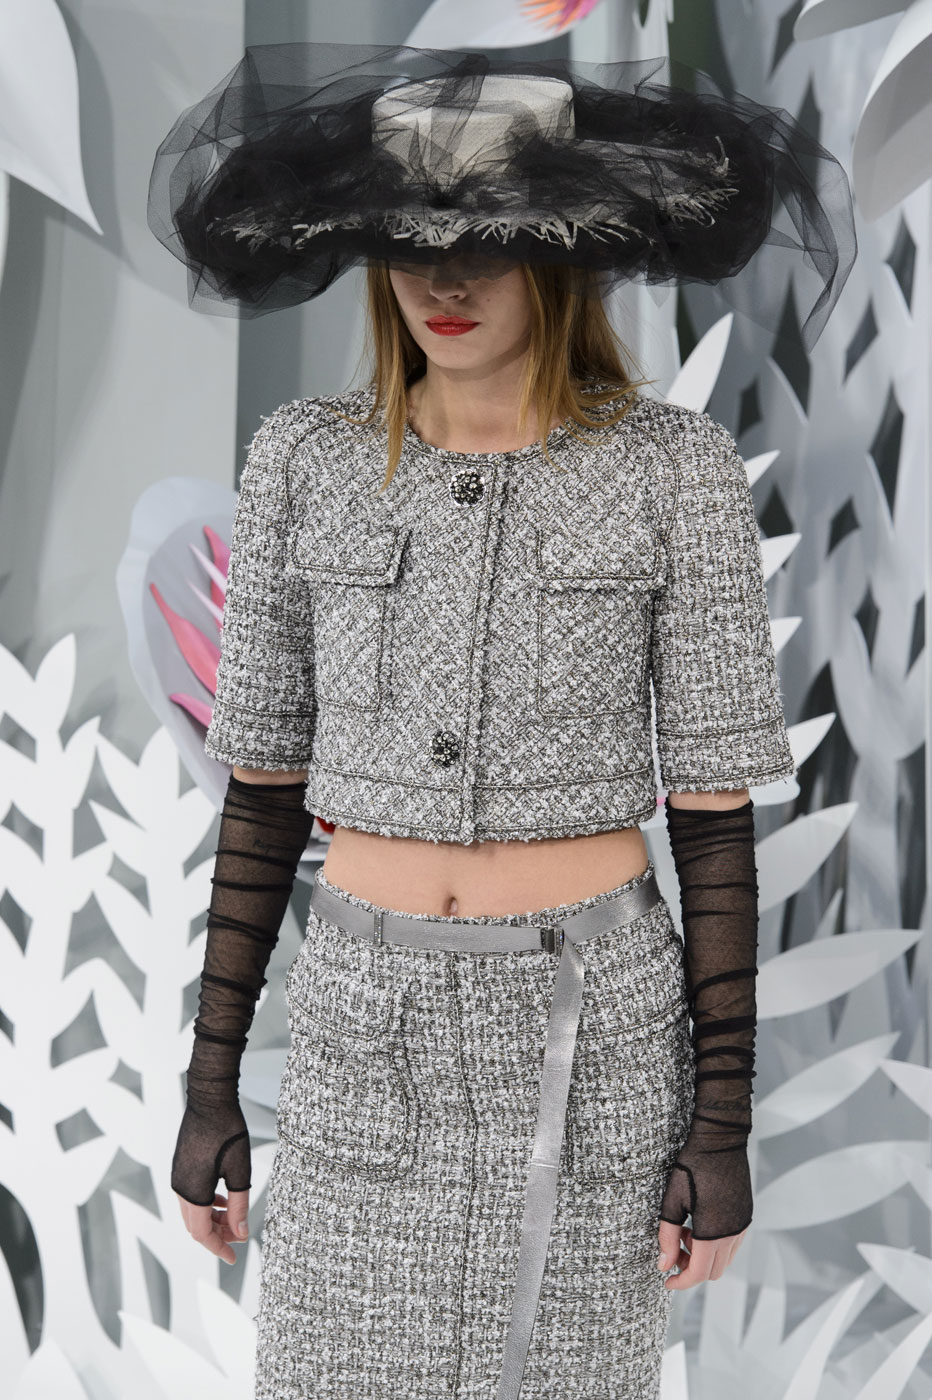 Chanel-fashion-runway-show-haute-couture-paris-spring-summer-2015-the-impression-043